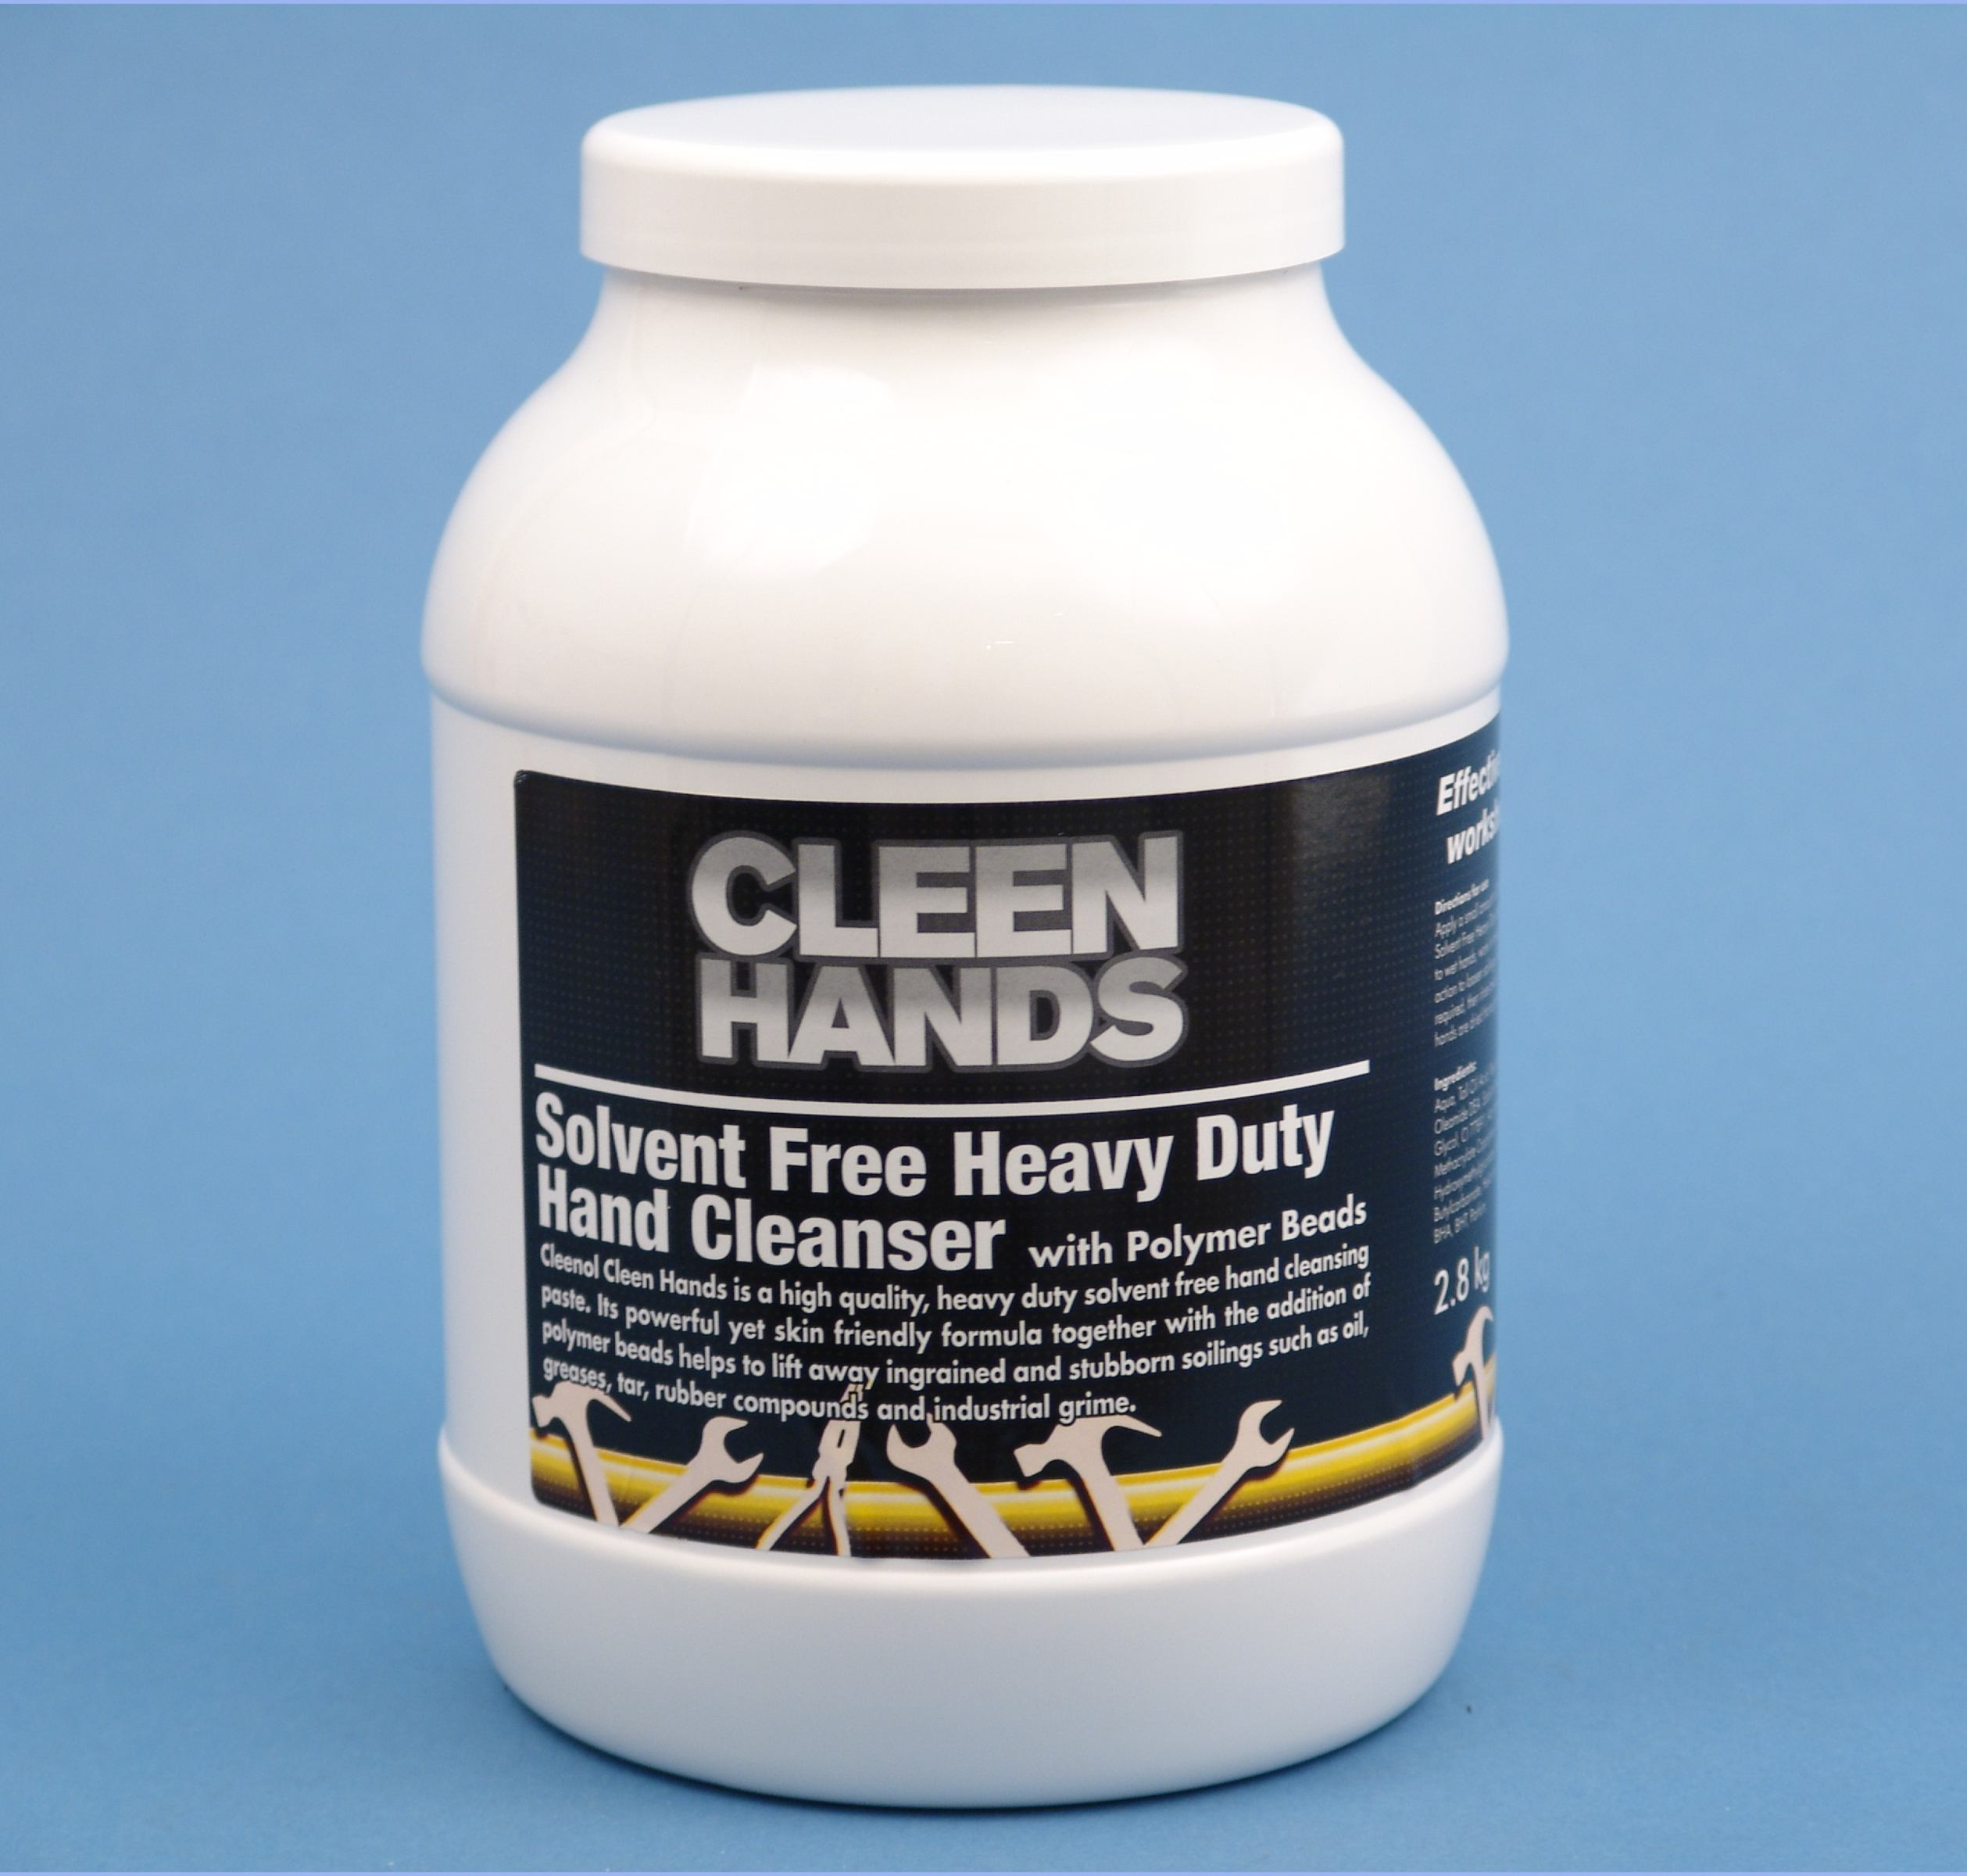 Cleen Hands Citrus Heavy Duty Hand Cleanser - 2.8 Litres